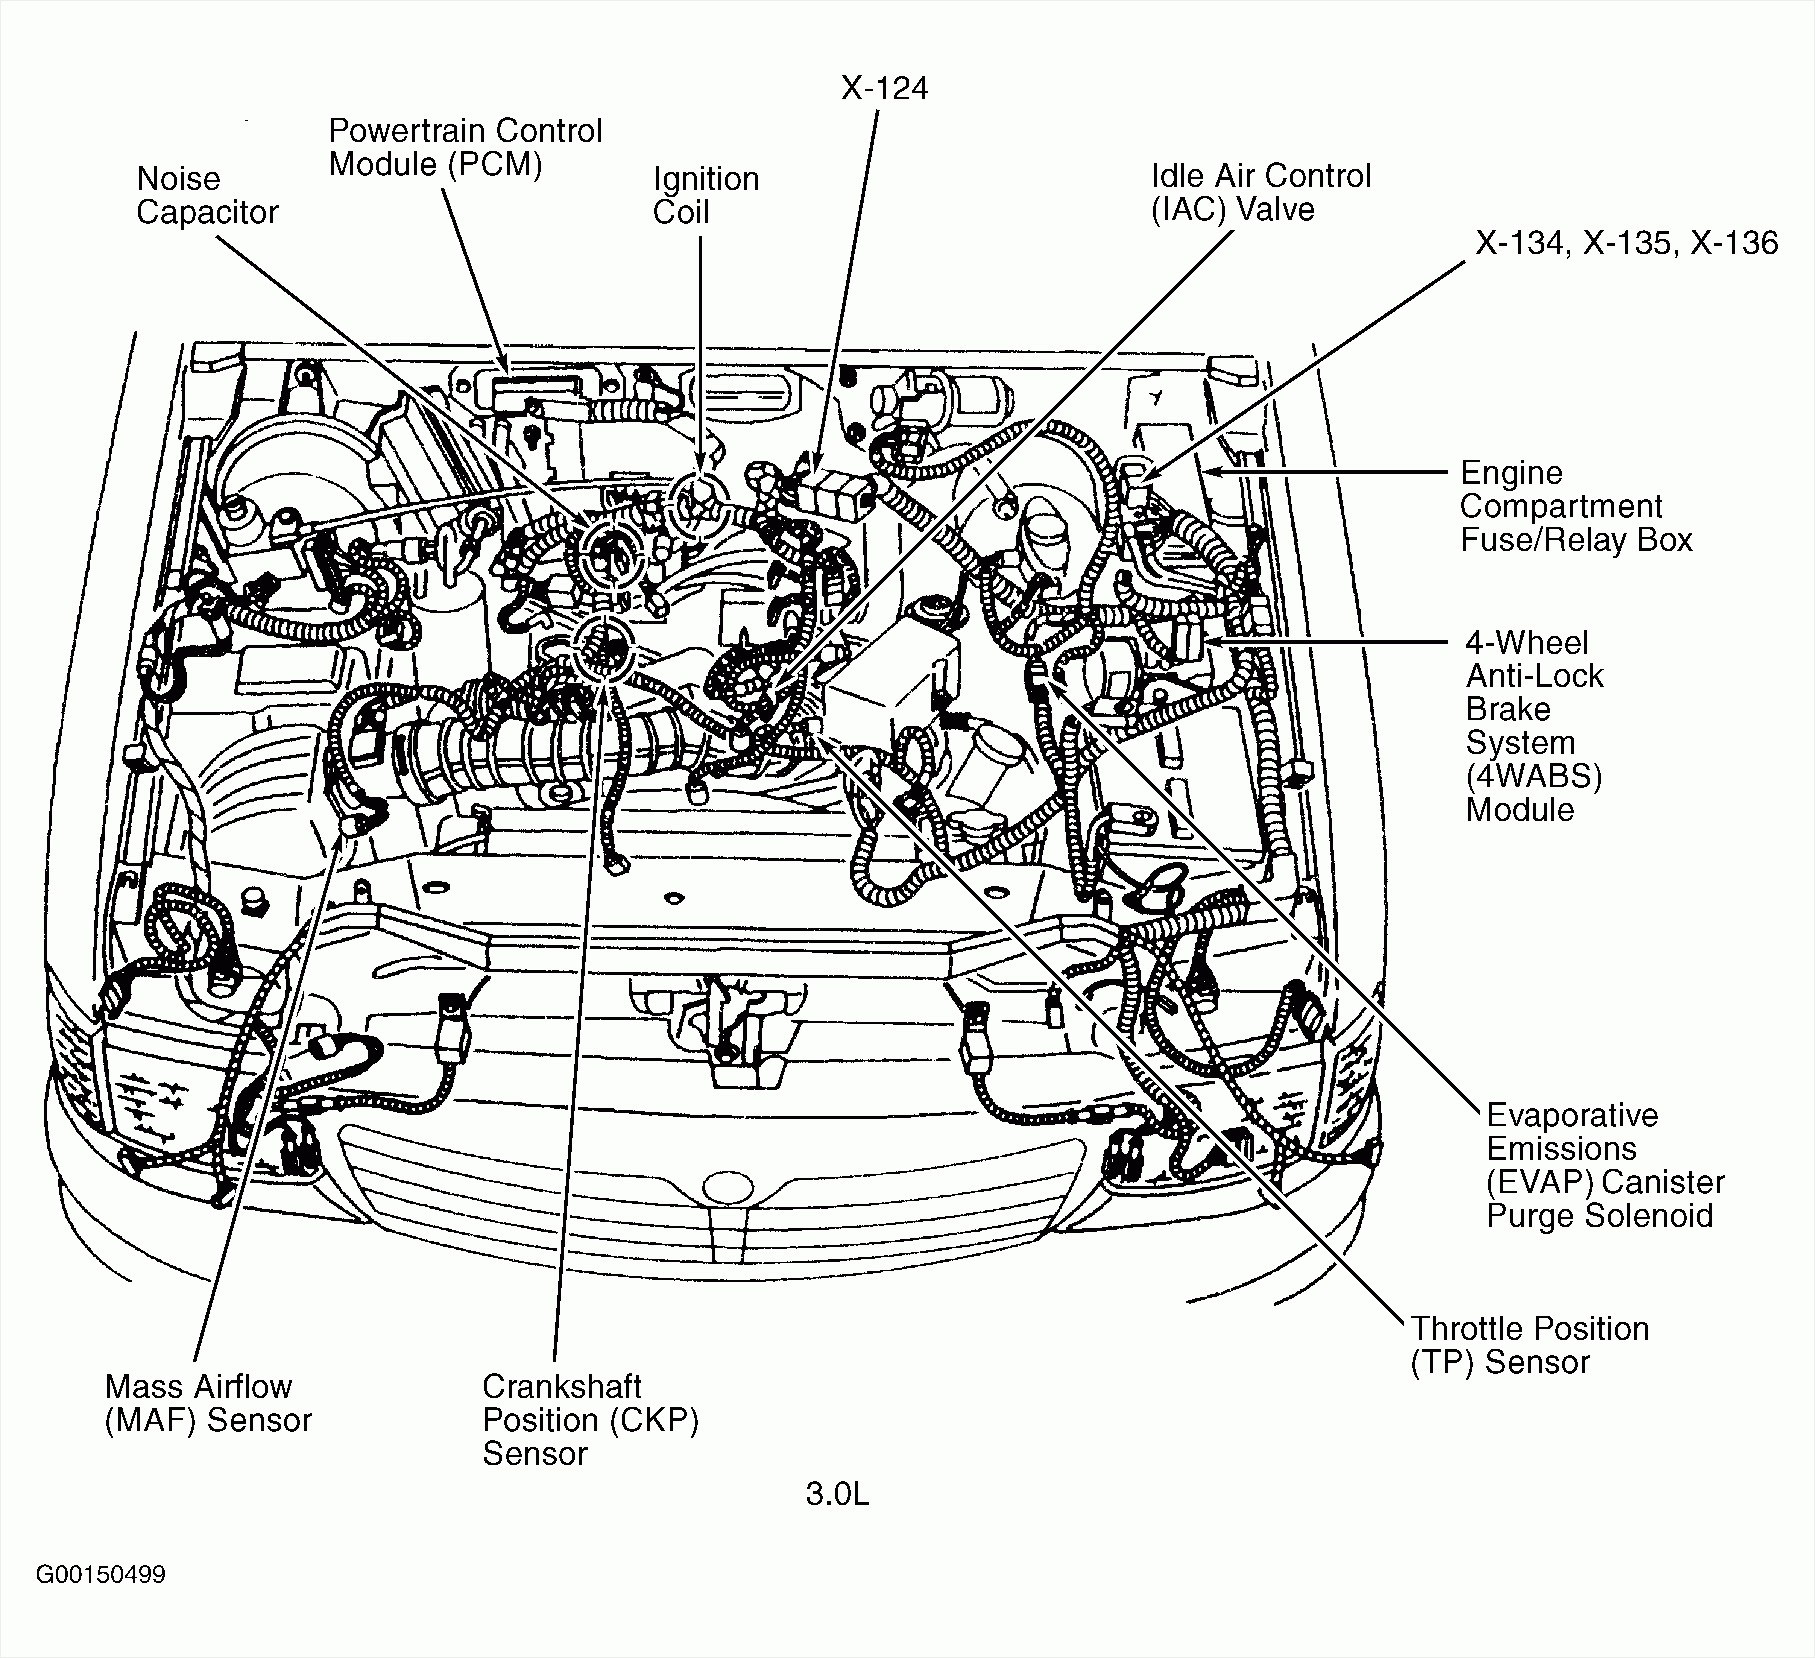 [WRG-4699] 3800 V6 Engine Diagram 2005 Buick Lacrosse